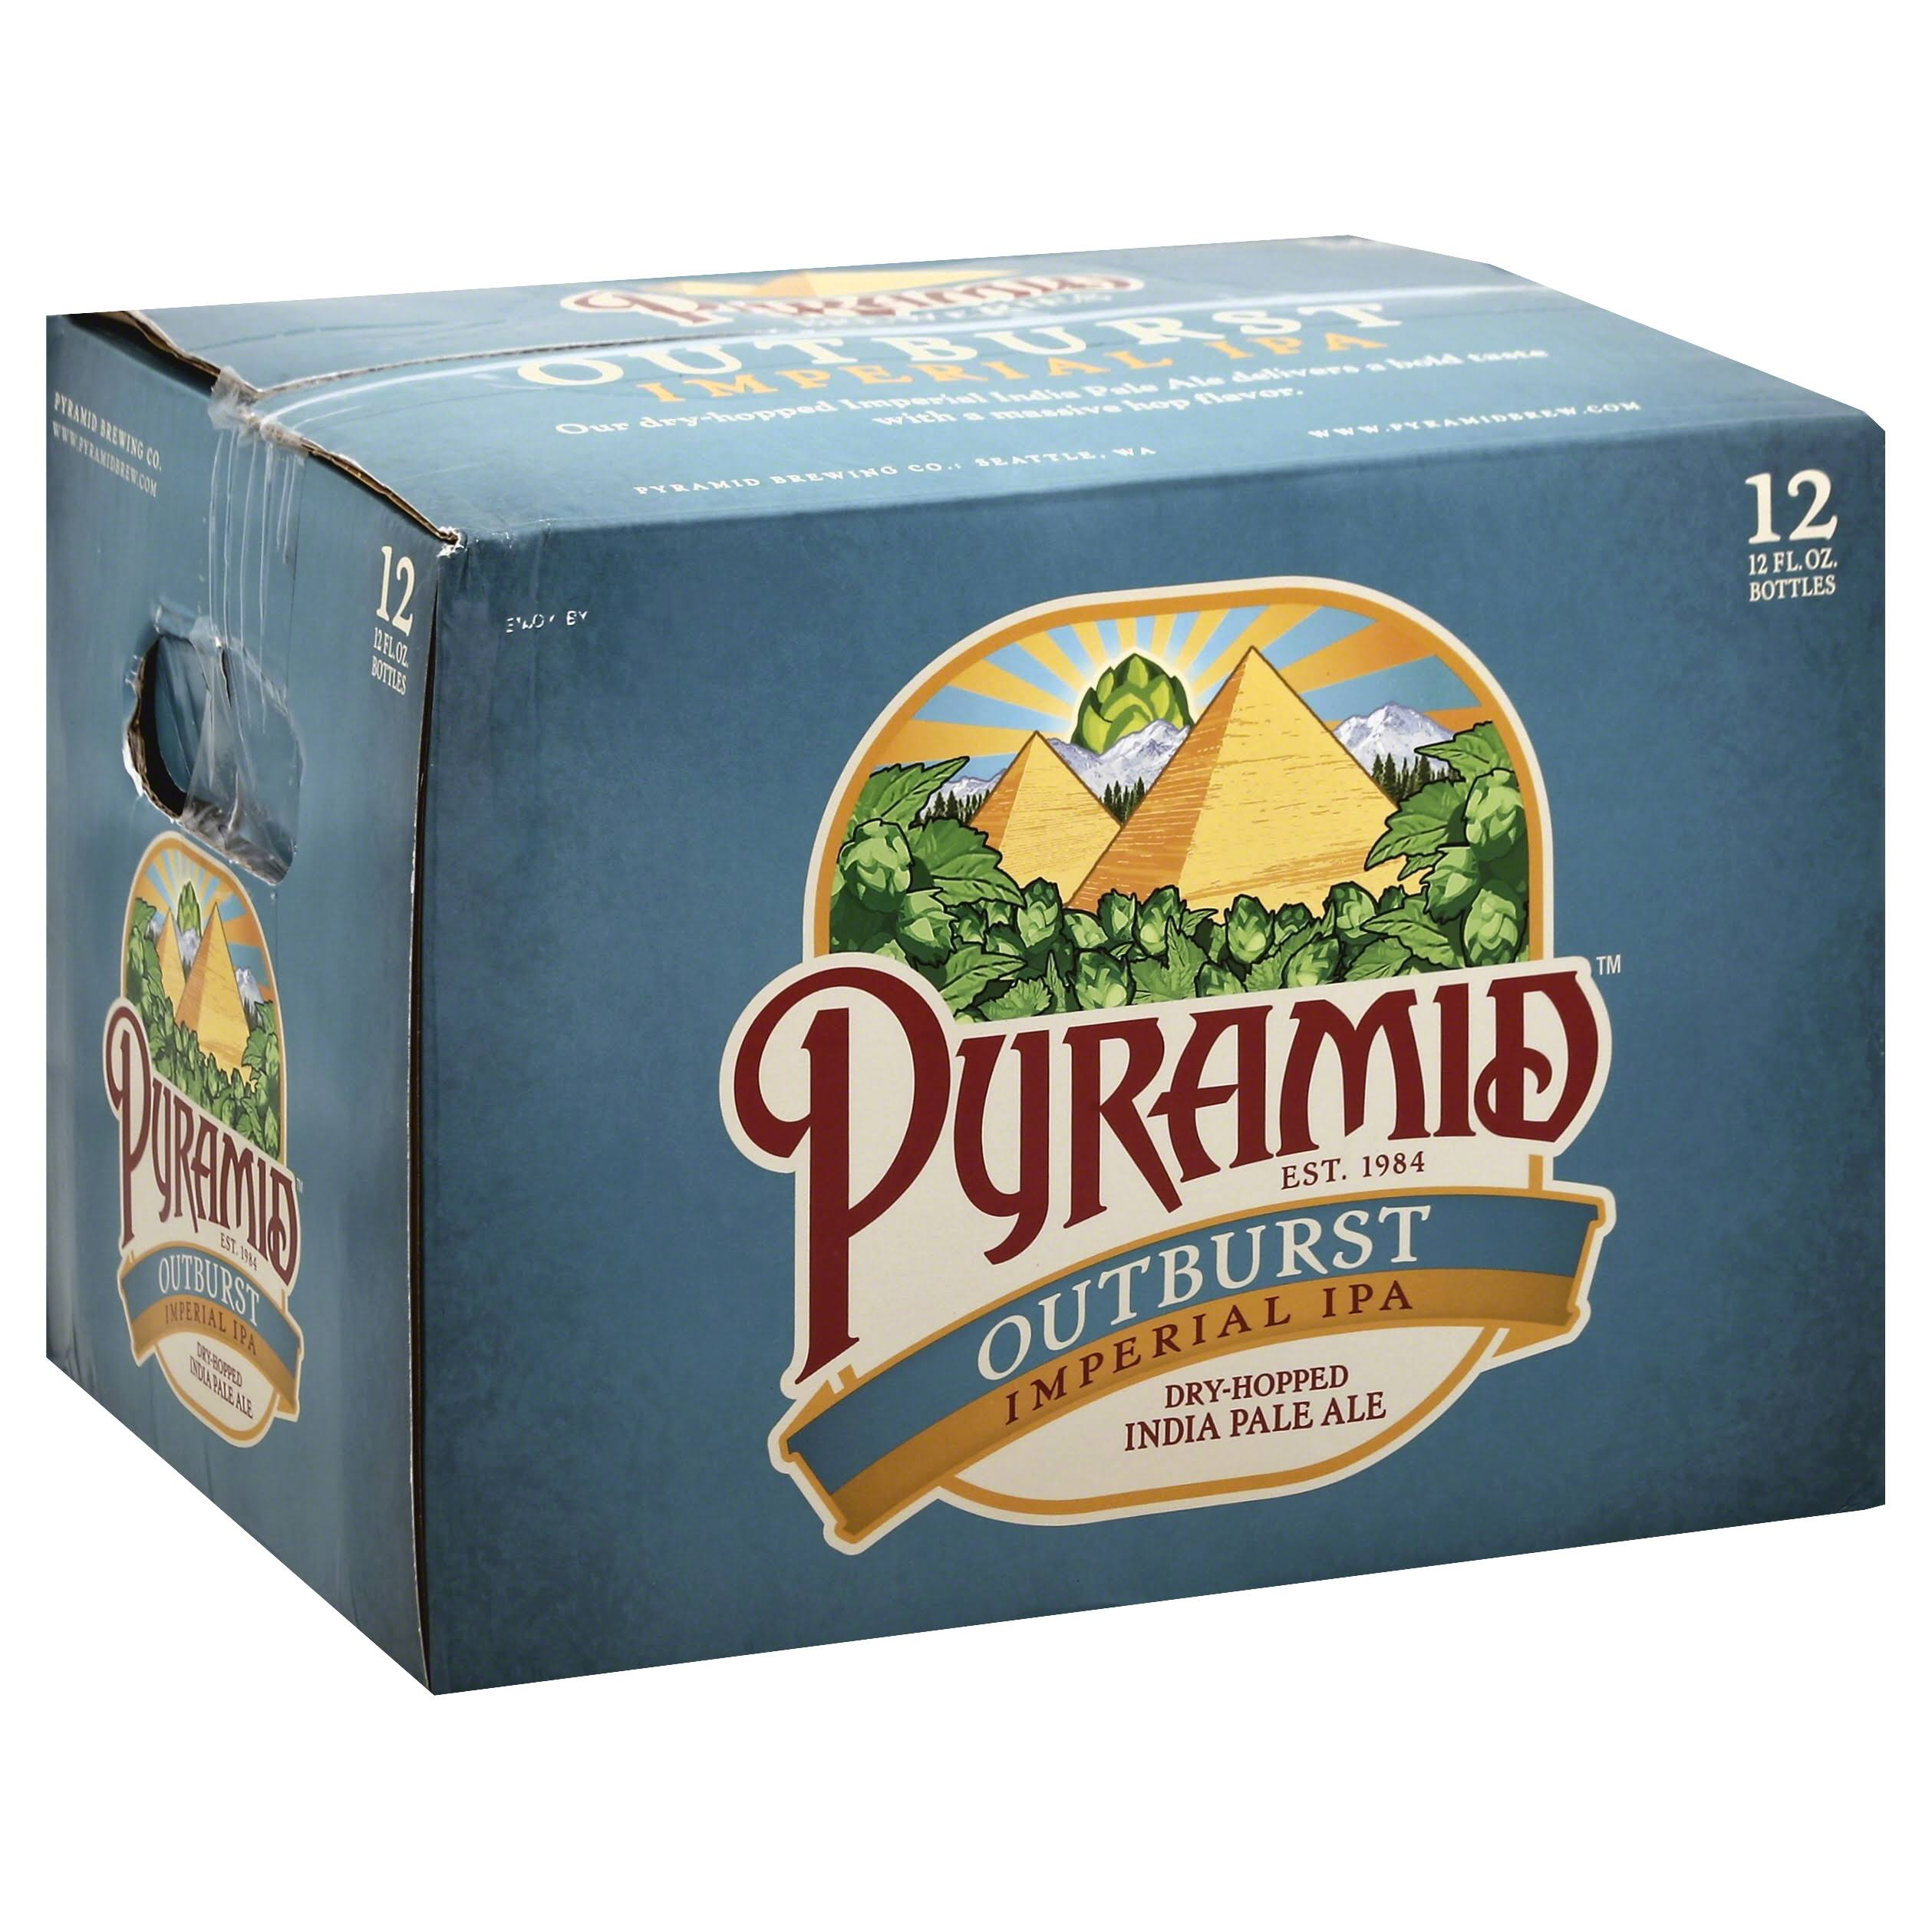 Pyramid Ale, India Pale, Outburst - 12 pack, 12 fl oz bottles